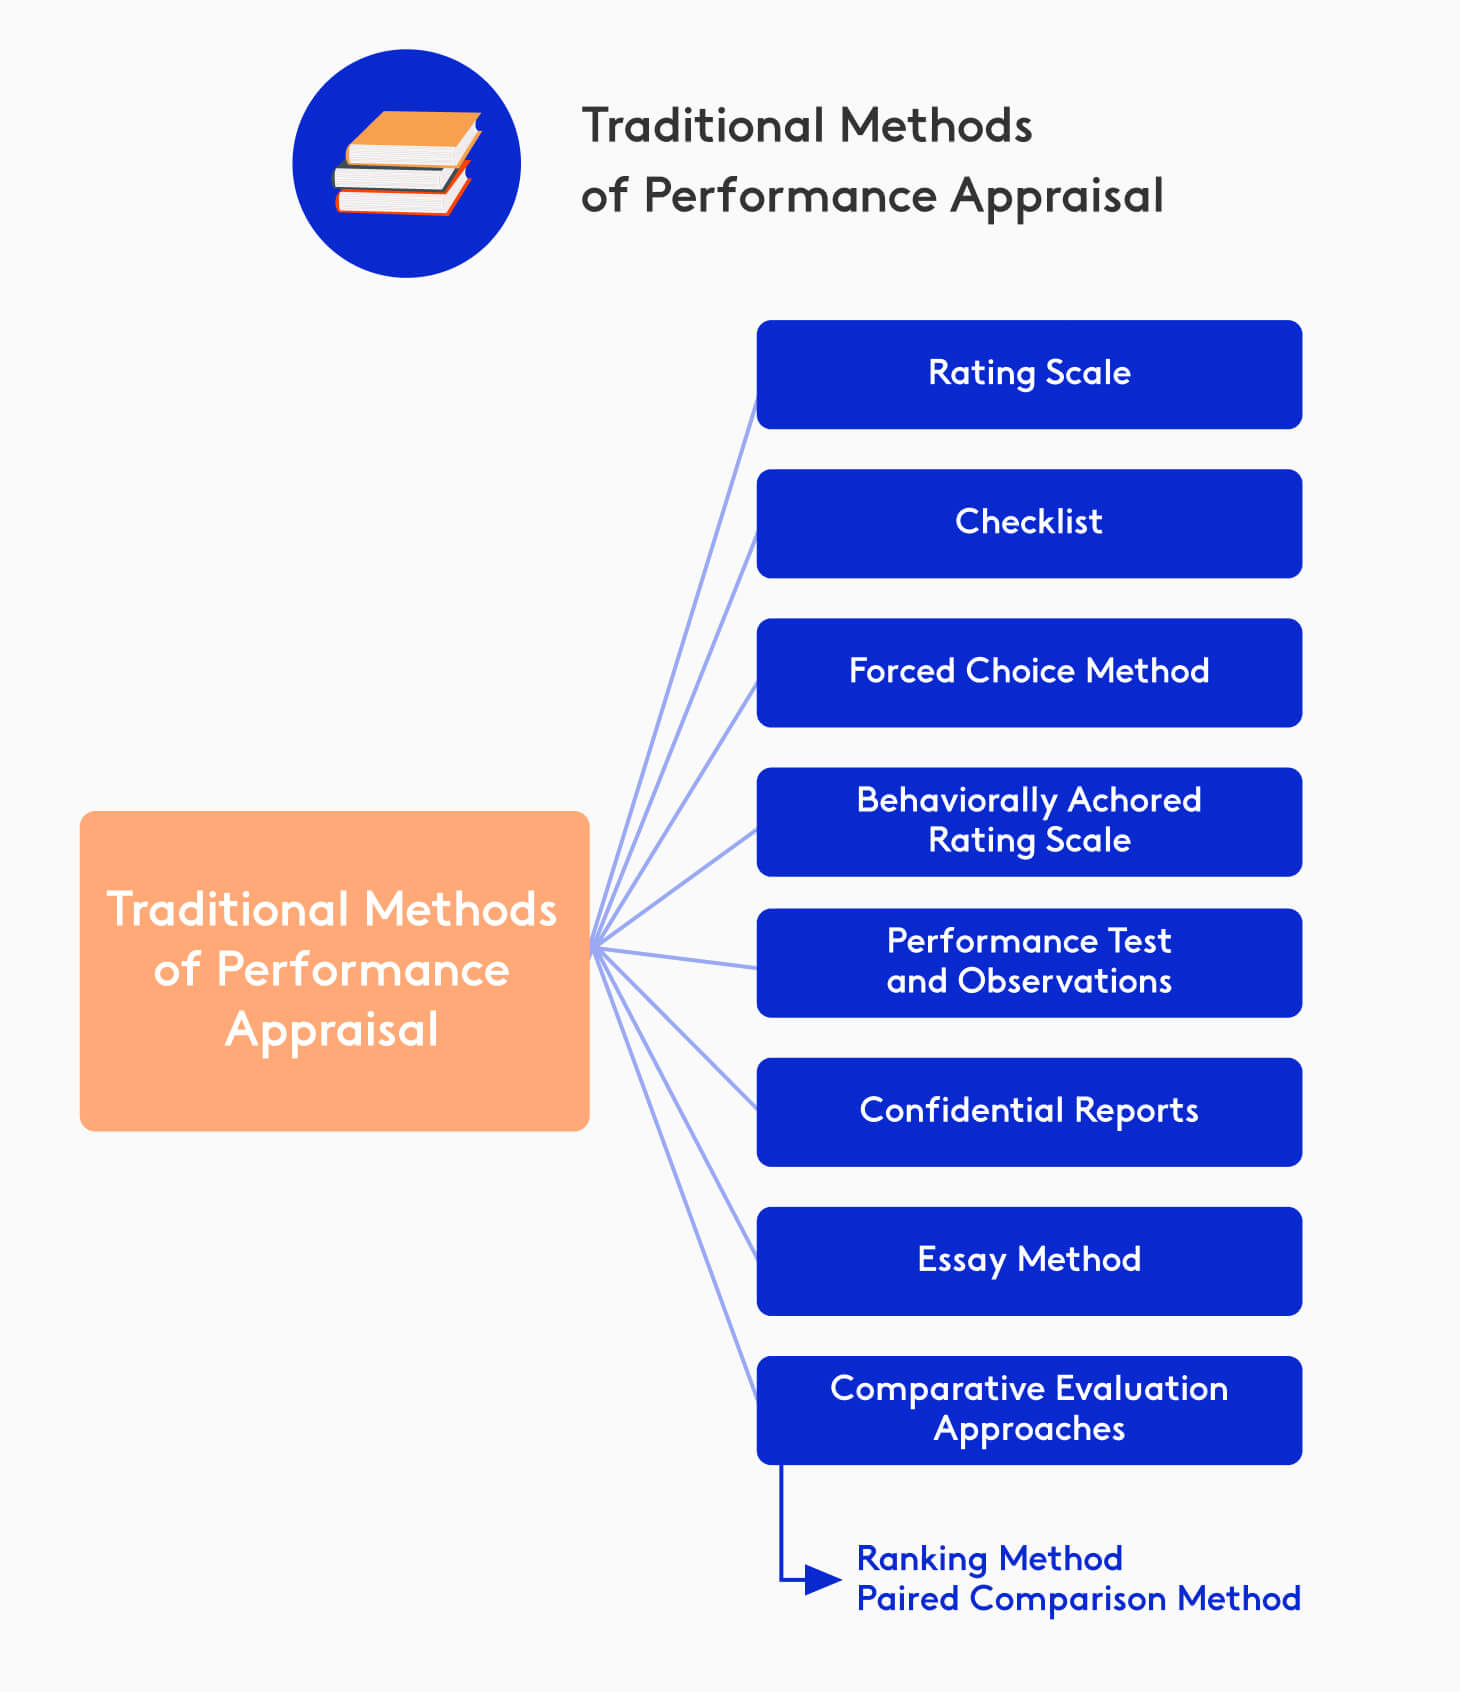 Diagram with traditional methods of performance appraisal